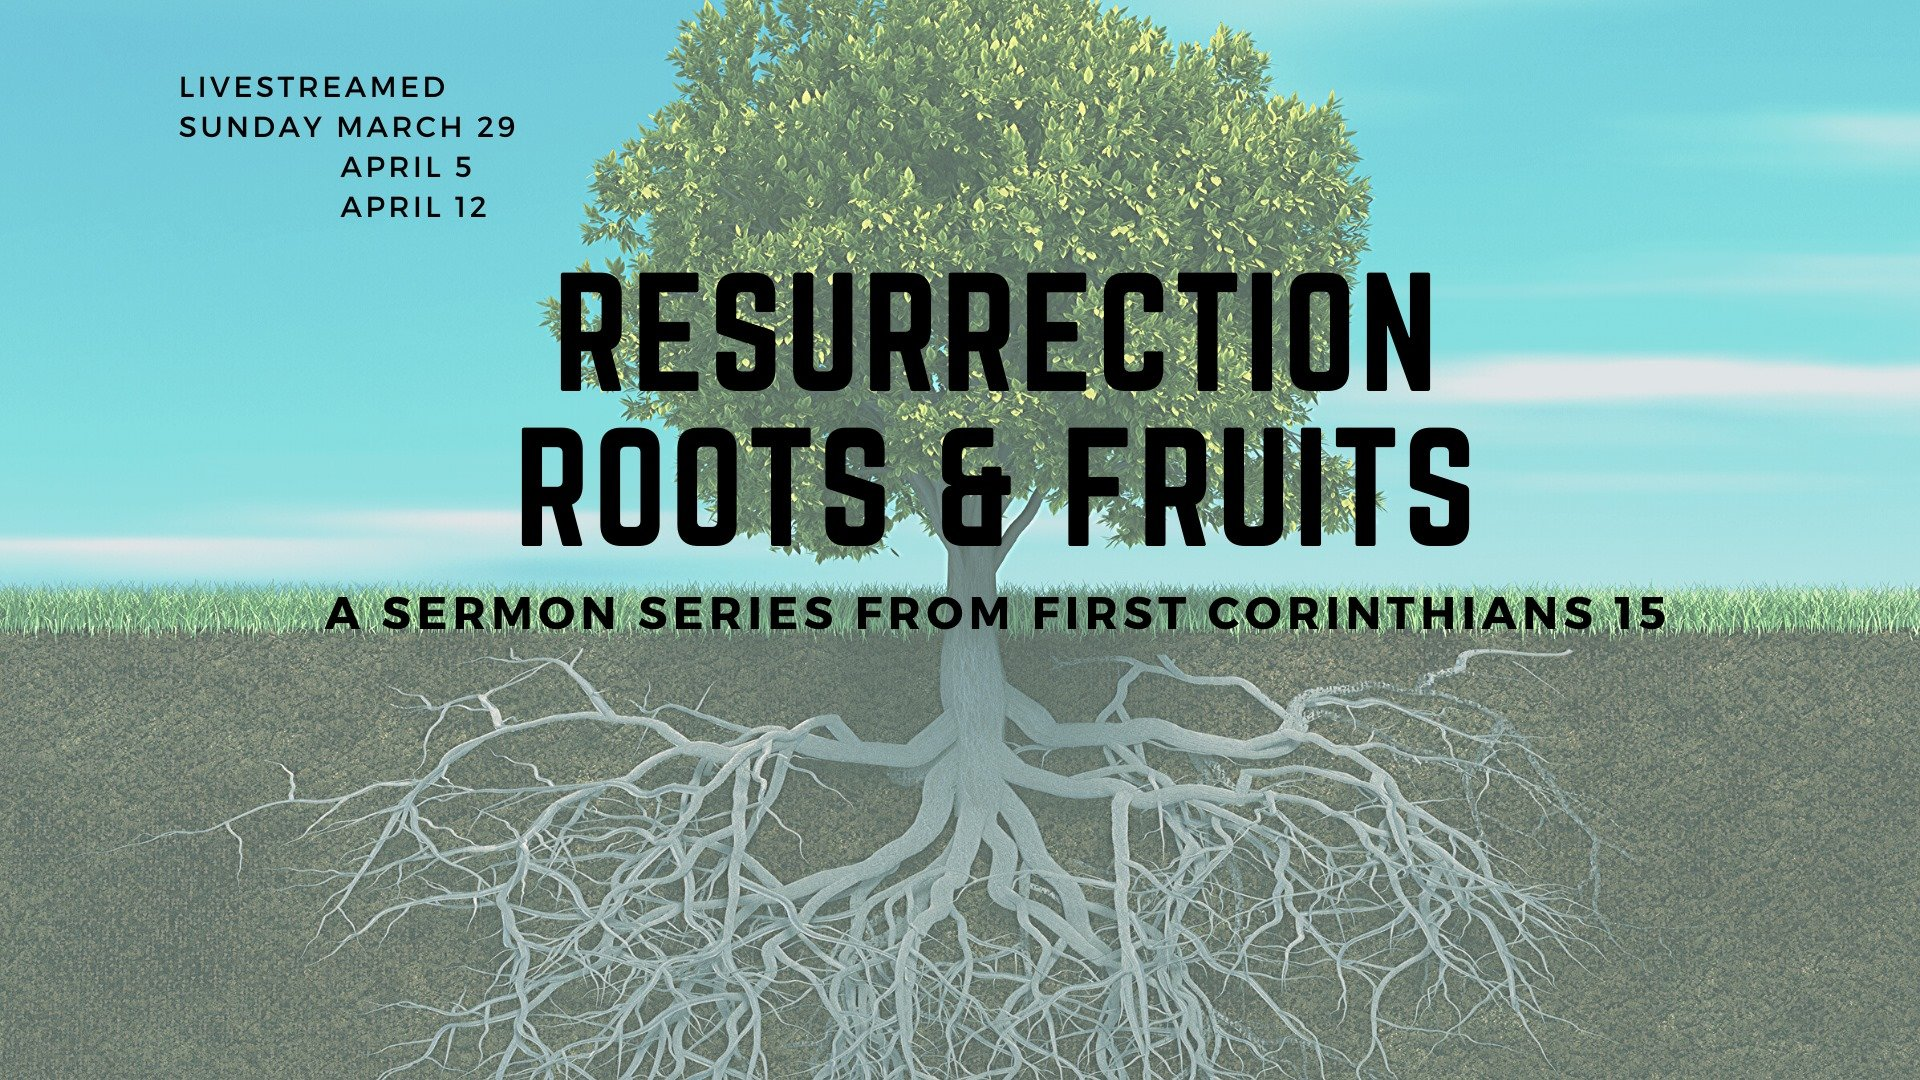 Resurection Roots and Fruits Sermon Series